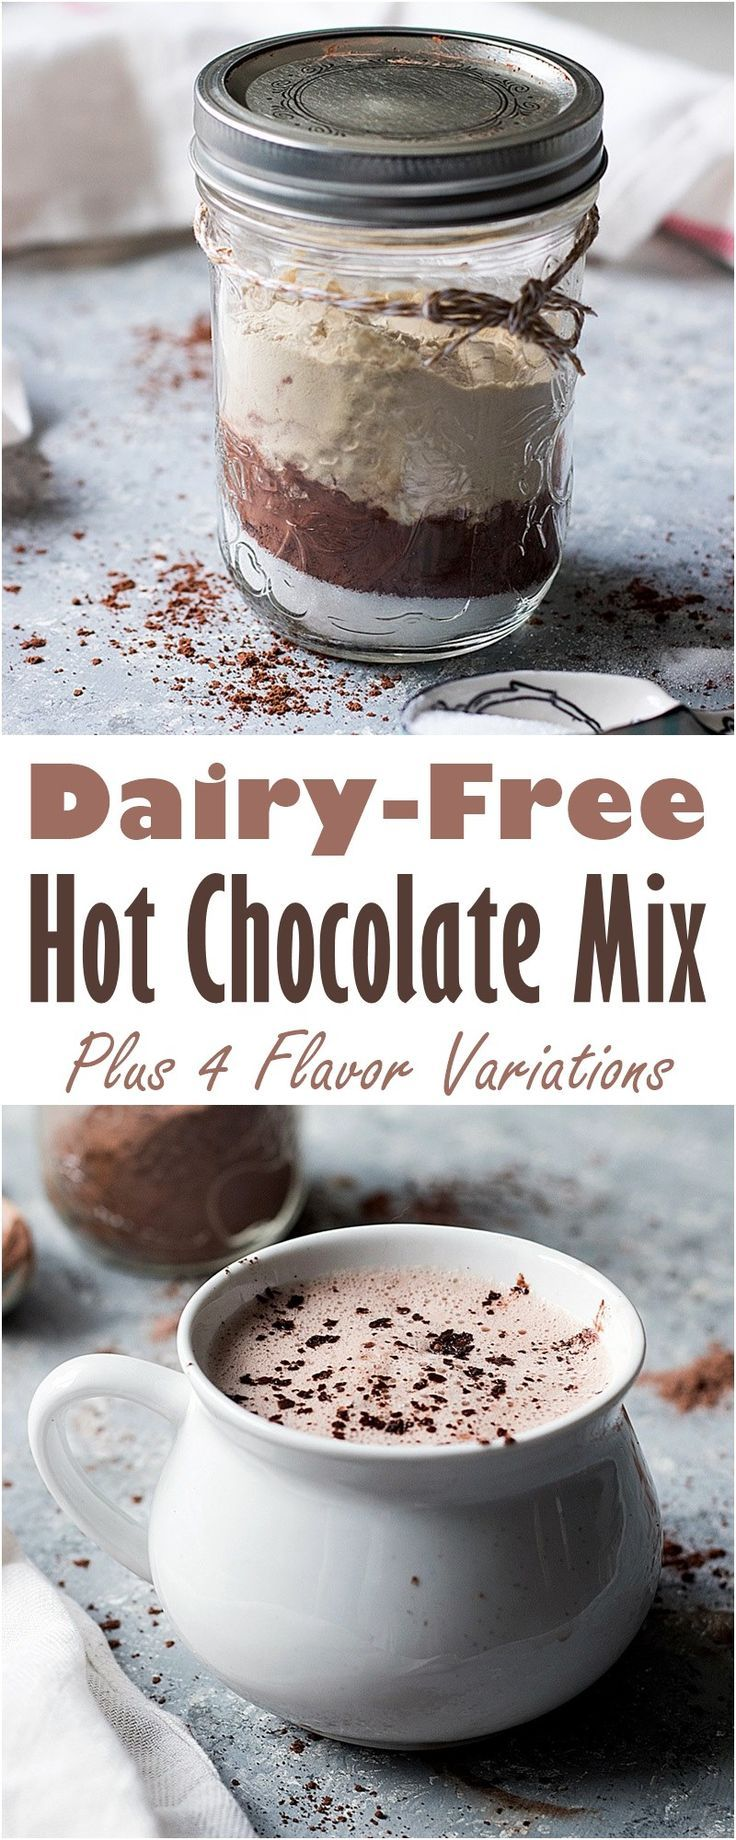 Dairyfree hot cocoa mix with flavor options recipe